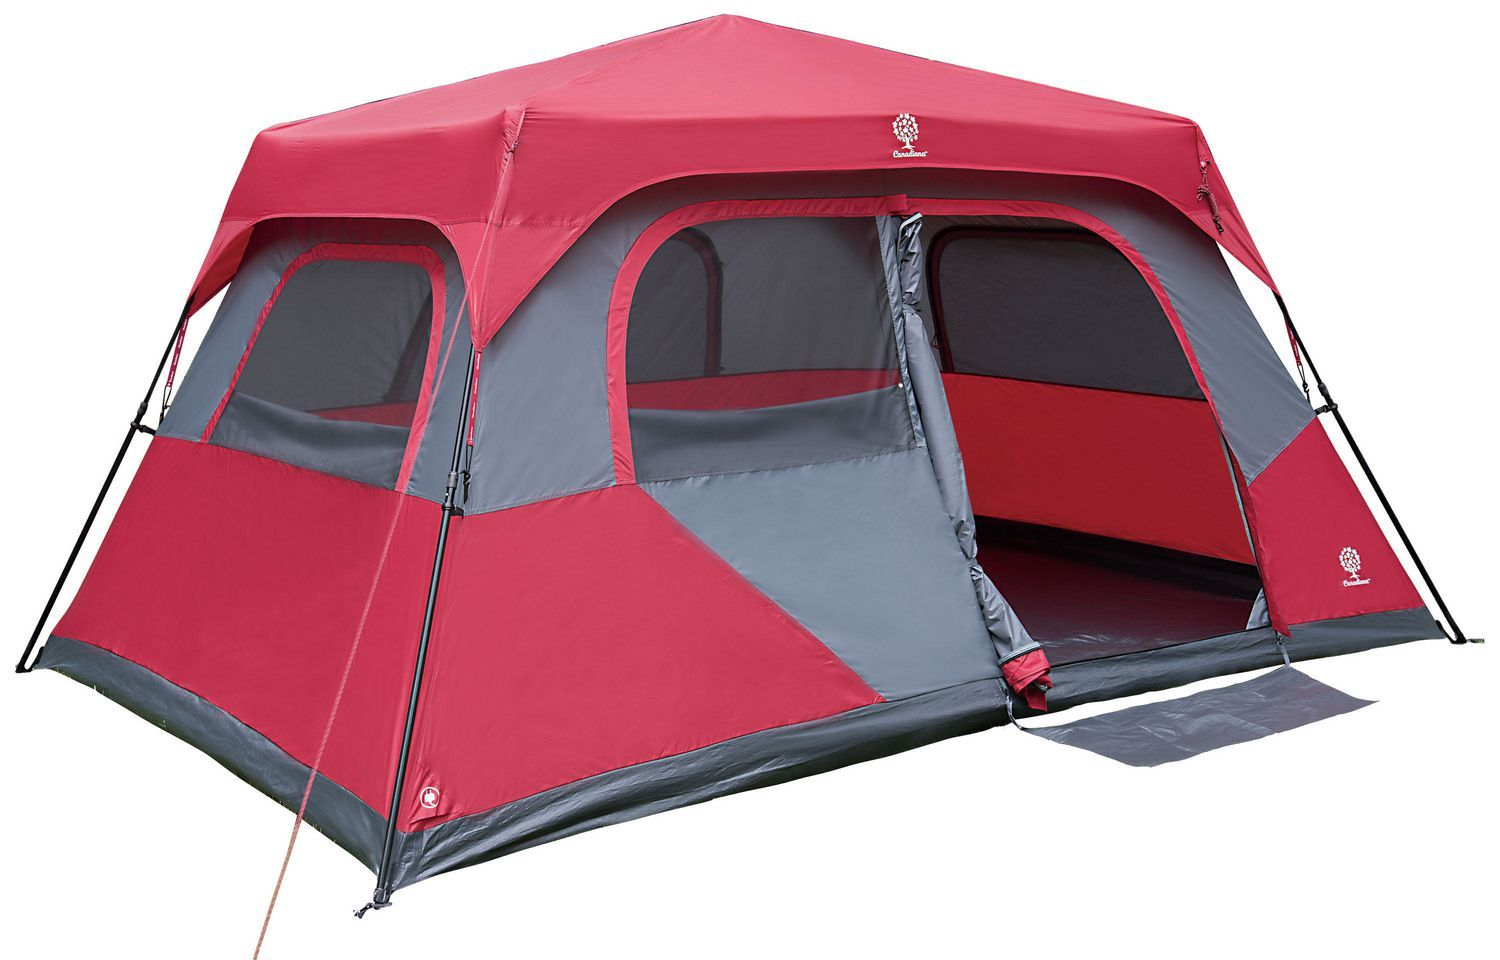 Canadiana 8 Person Instant Hybrid Dome Tent $178  sc 1 st  Pinterest & Canadiana 8 Person Instant Hybrid Dome Tent $178 | camping | rv ...